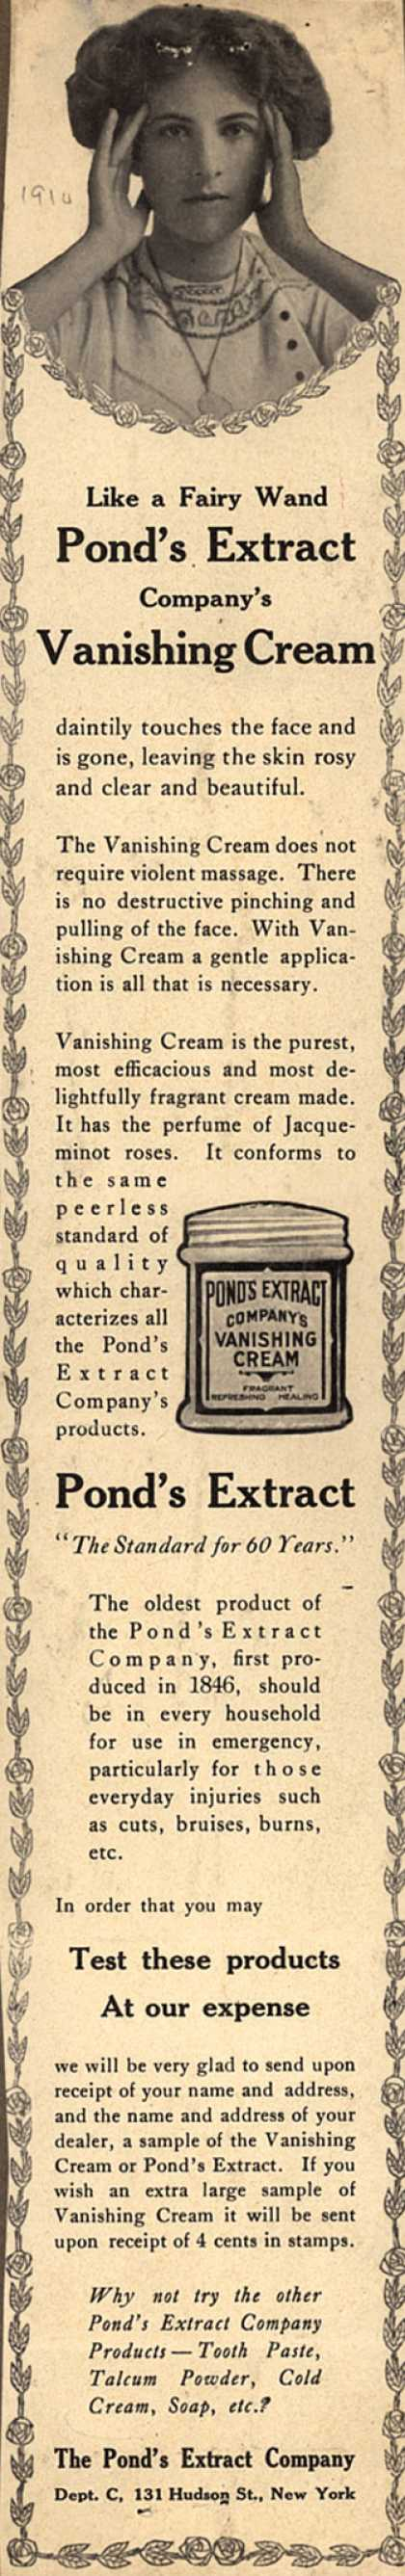 Pond's Extract Co.'s Pond's Vanishing Cream and Extract – Like a Fairy Wand (1910)